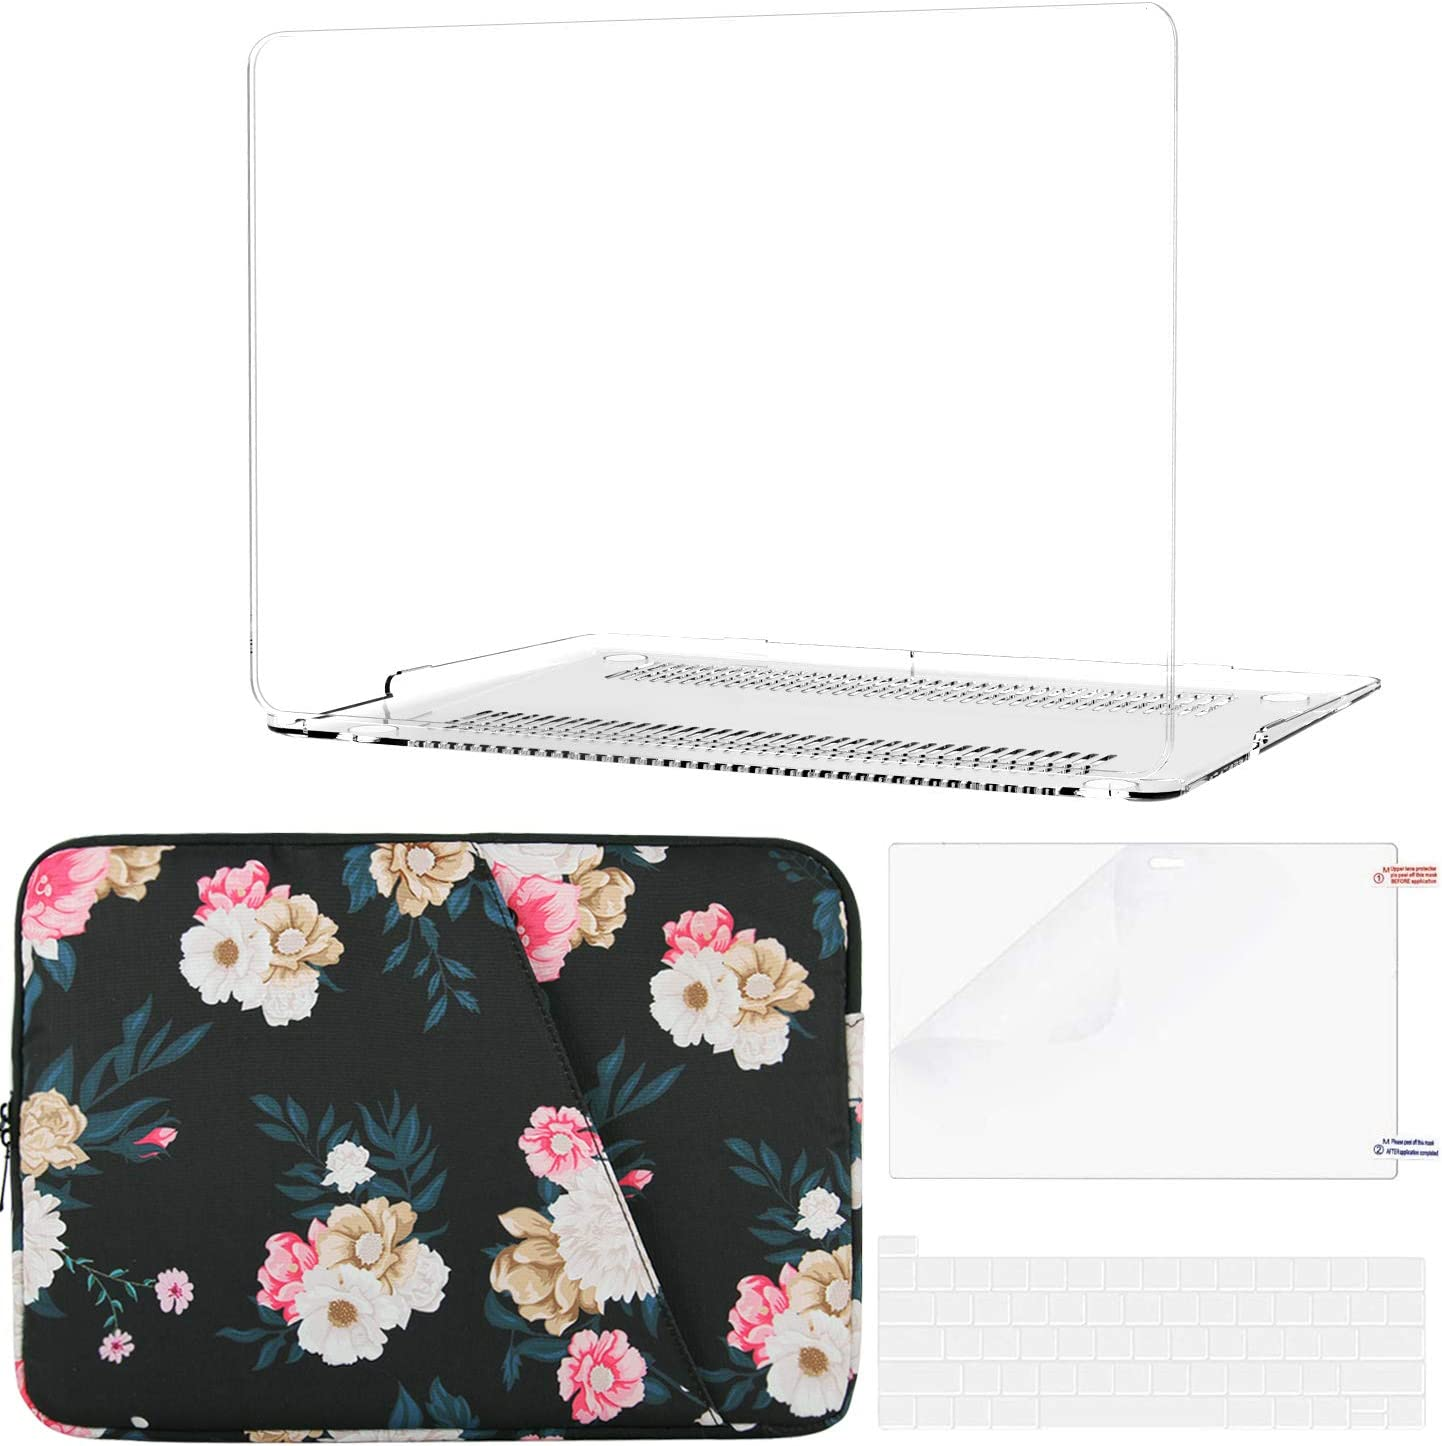 B BELK Compatible with MacBook Pro 2020 Case (A2338 M1 A2289 A2251) + Inner Soft Flower Sleeve Bag, MacBook Pro 13 inch Case 2020 with Touch Bar + Keyboard Cover + Screen Protector, Clear